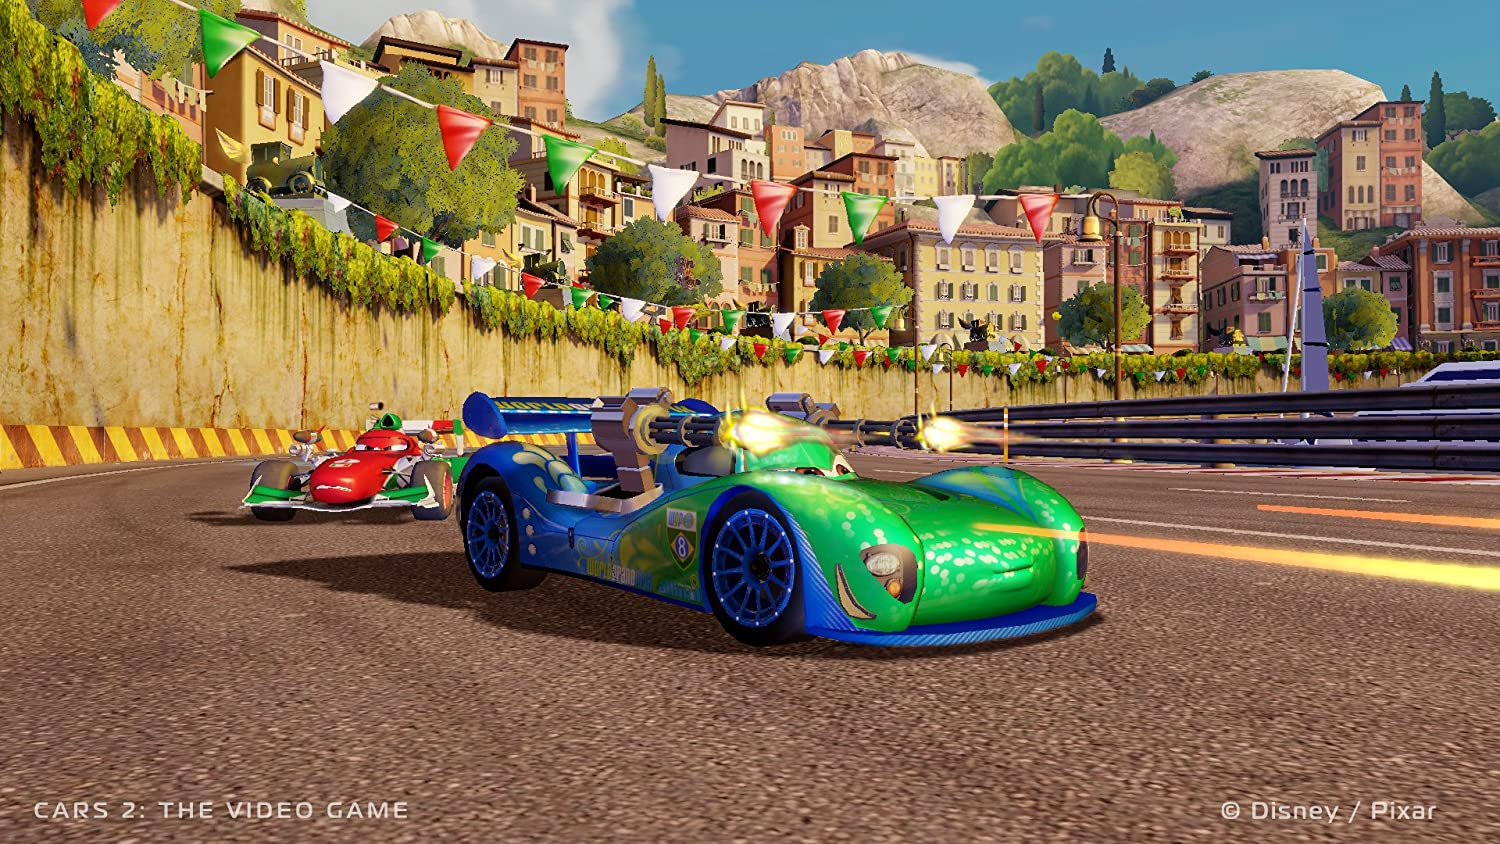 Amazon.com: Cars 2: The Video Game: PC: Video Games